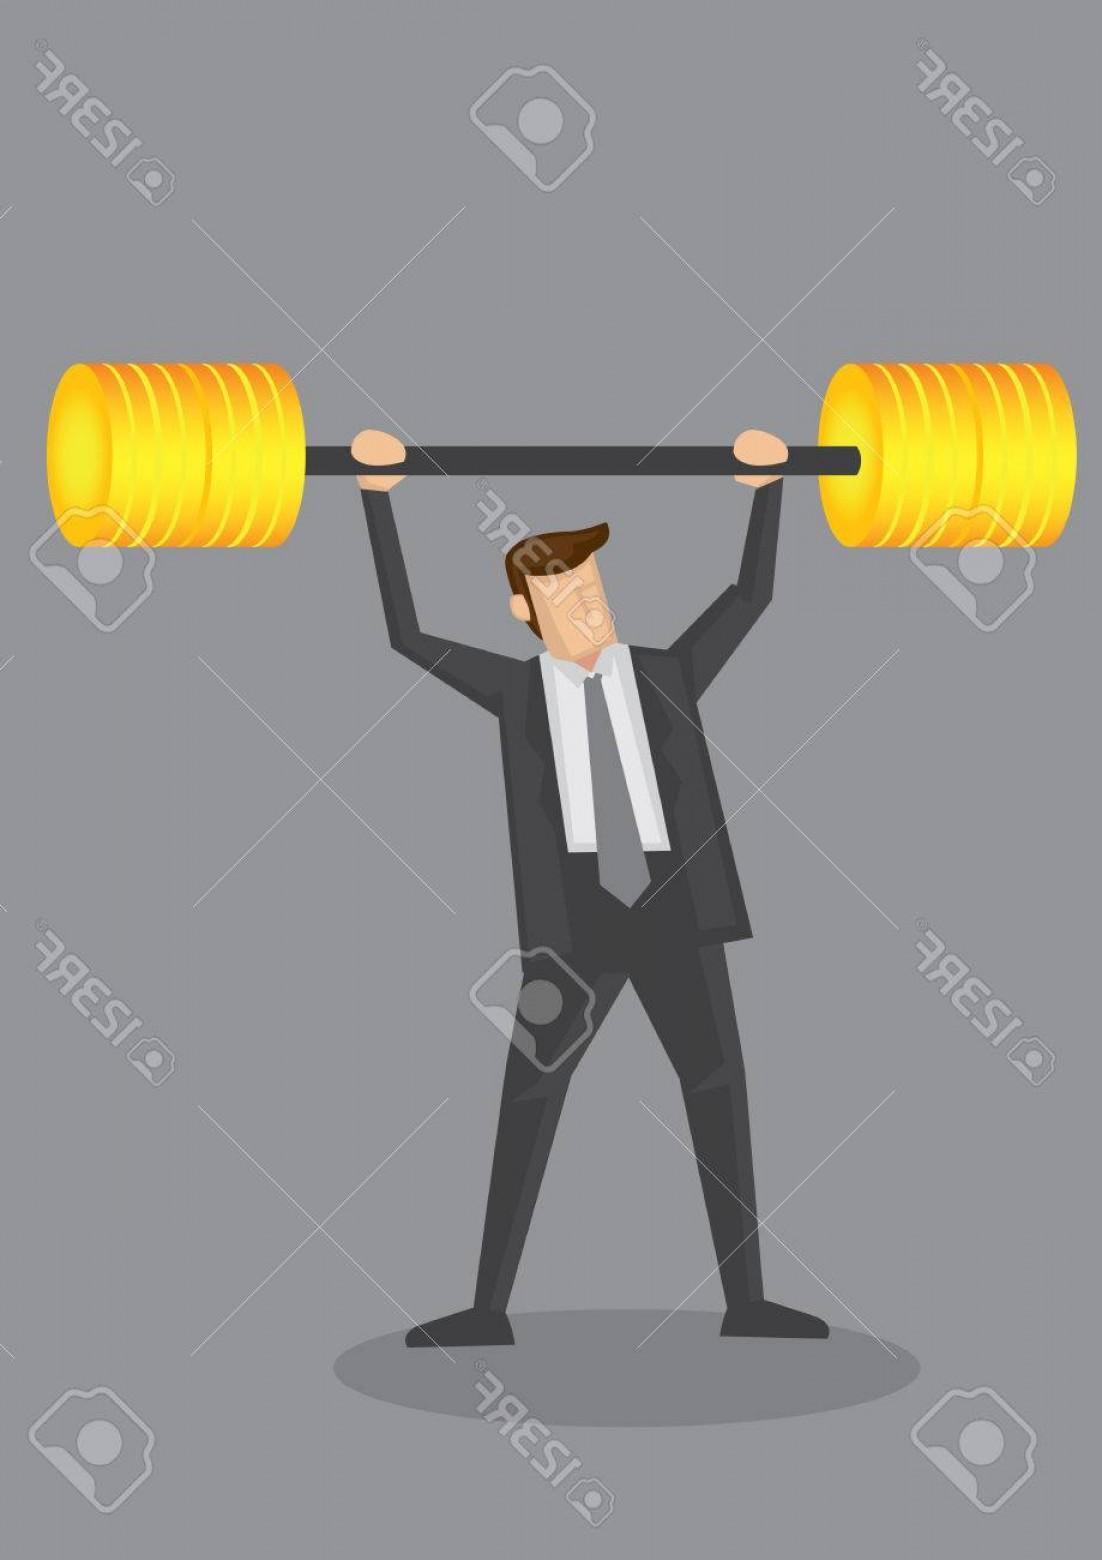 Bumper Barbell Vector: Photostock Vector Business Executive Powerlifting Barbell Made Of Golden Bumper Plates Discs Vector Illustration For B